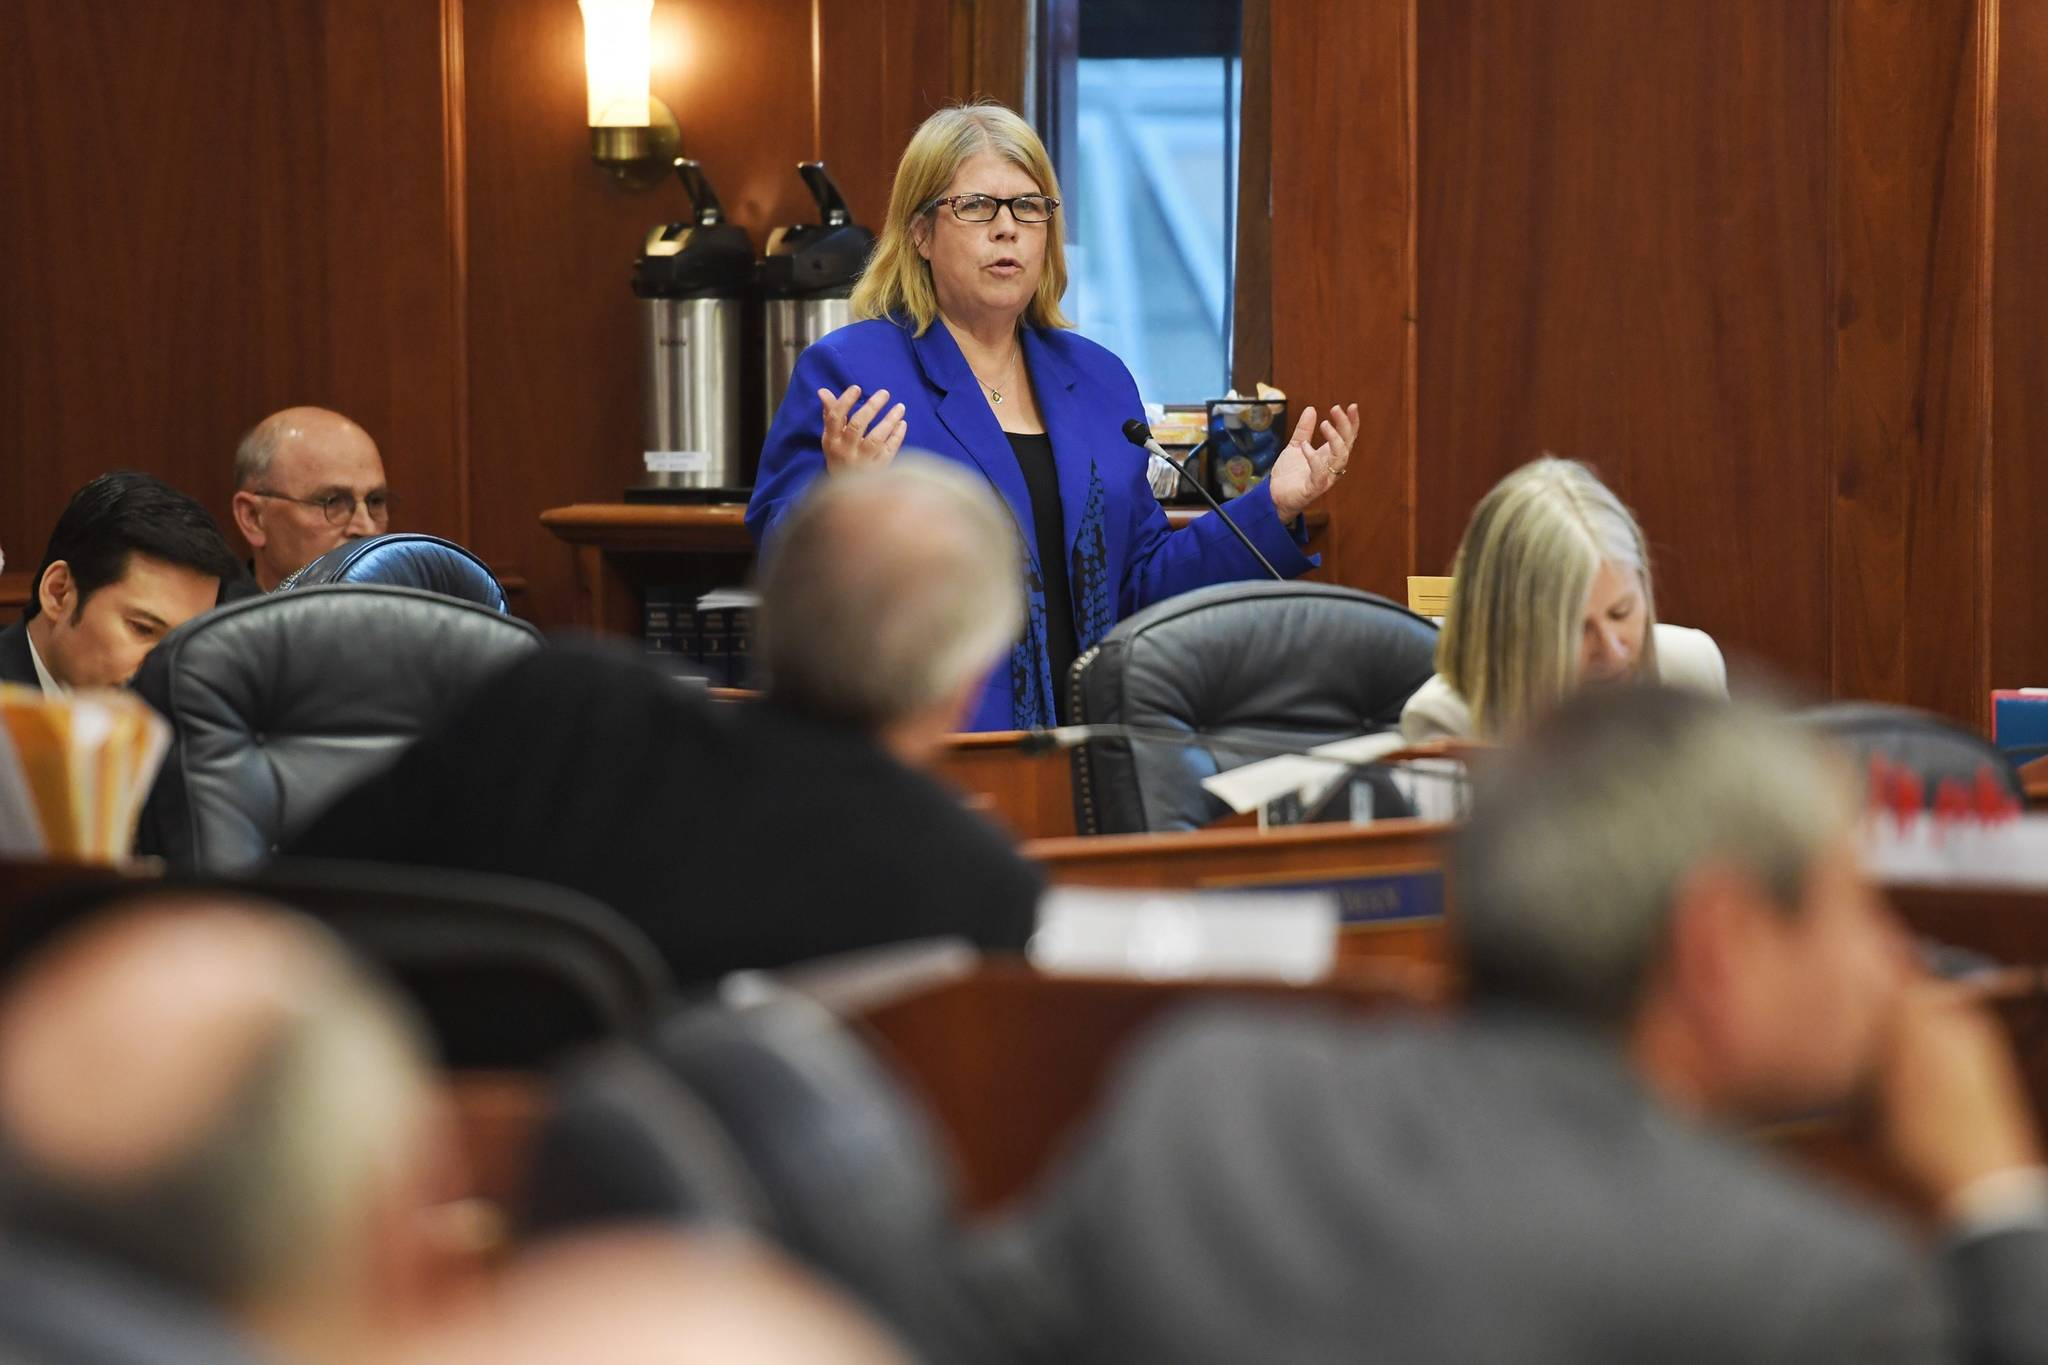 Rep. Tammie Wilson, R-North Pole, speaks against an override vote during a Joint Session of the Alaska Legislature to vote on an override of Gov. Mike Dunleavy's budget vetoes at the Capitol on Wednesday, July 10, 2019. (Michael Penn   Juneau Empire)